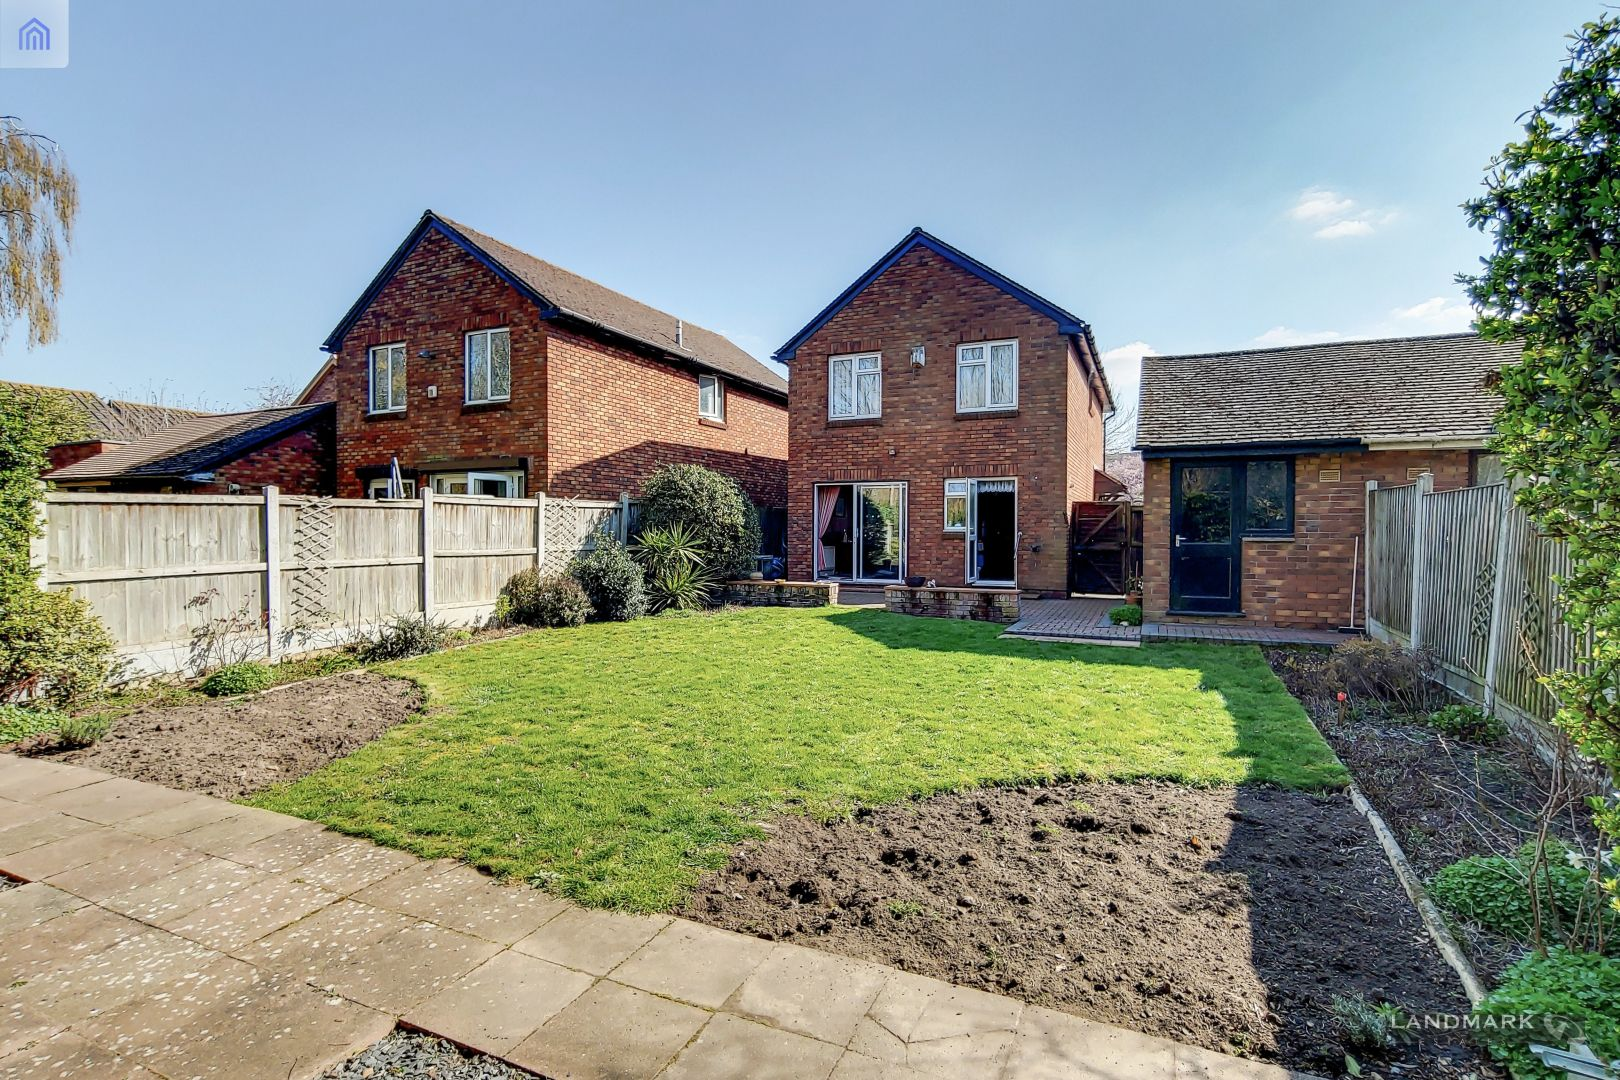 4 bed house for sale in Chichester Close  - Property Image 18